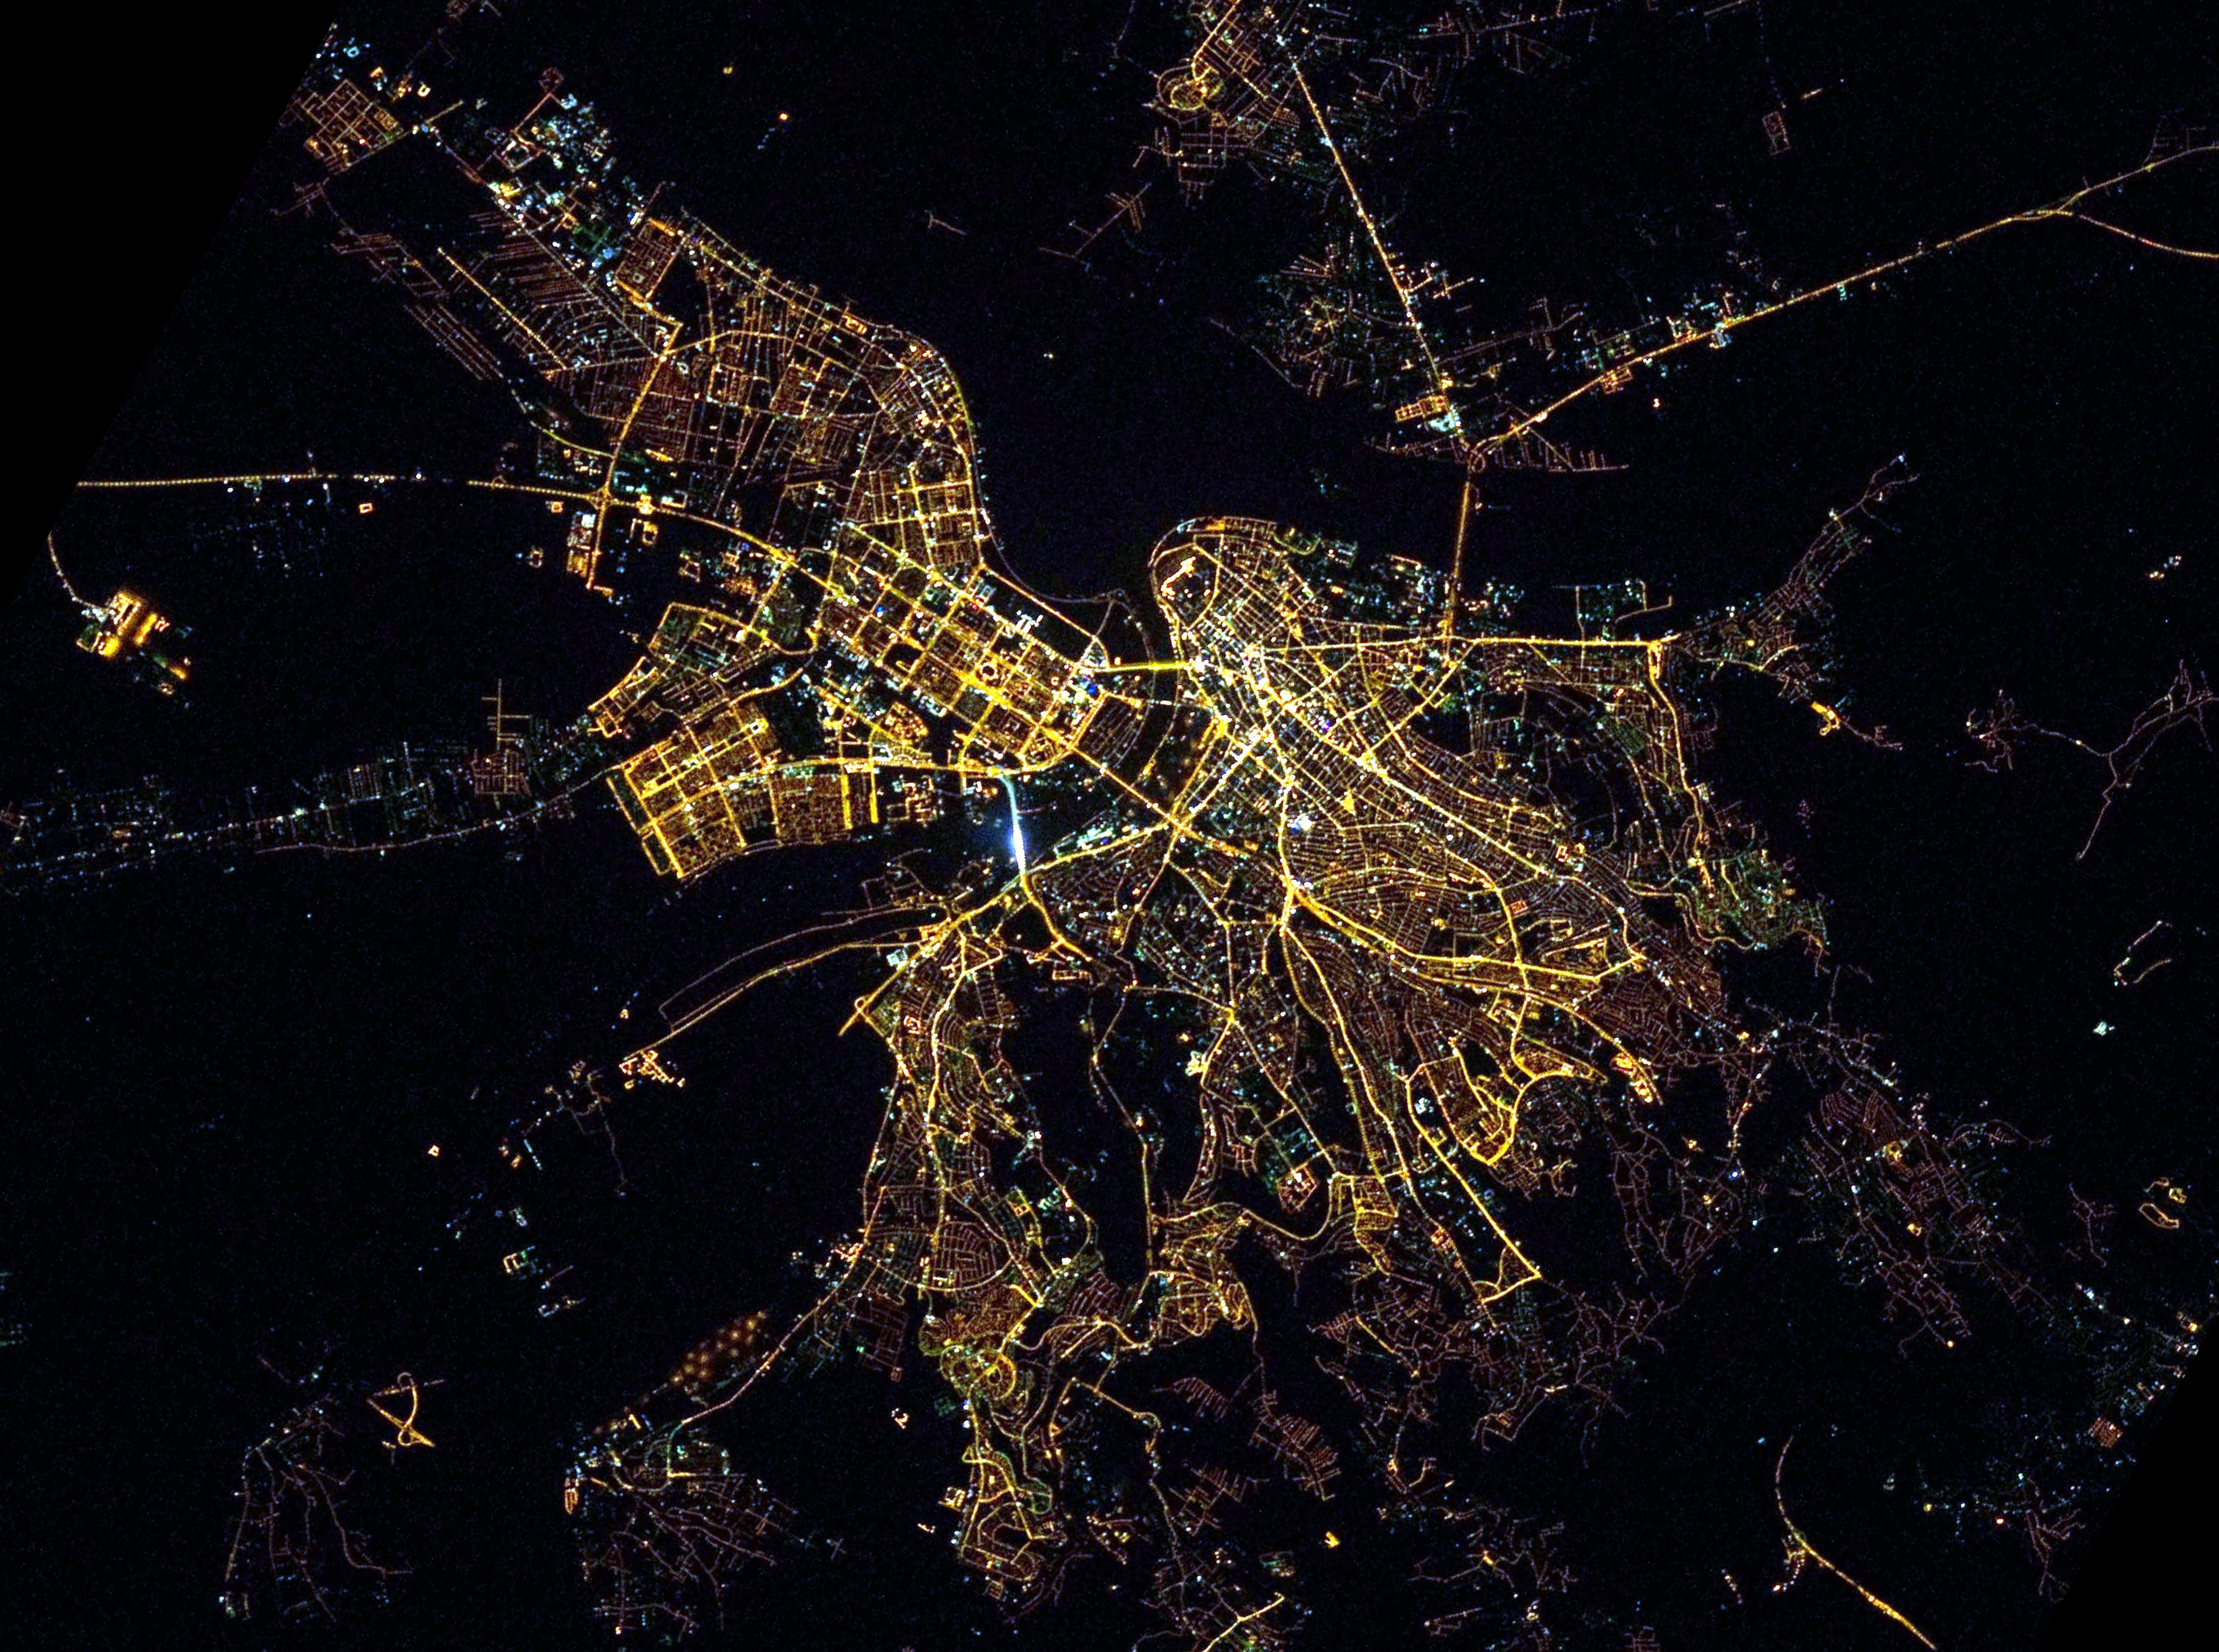 File Warp Belgrade Nightscene April 2012spatial Subset Jpg